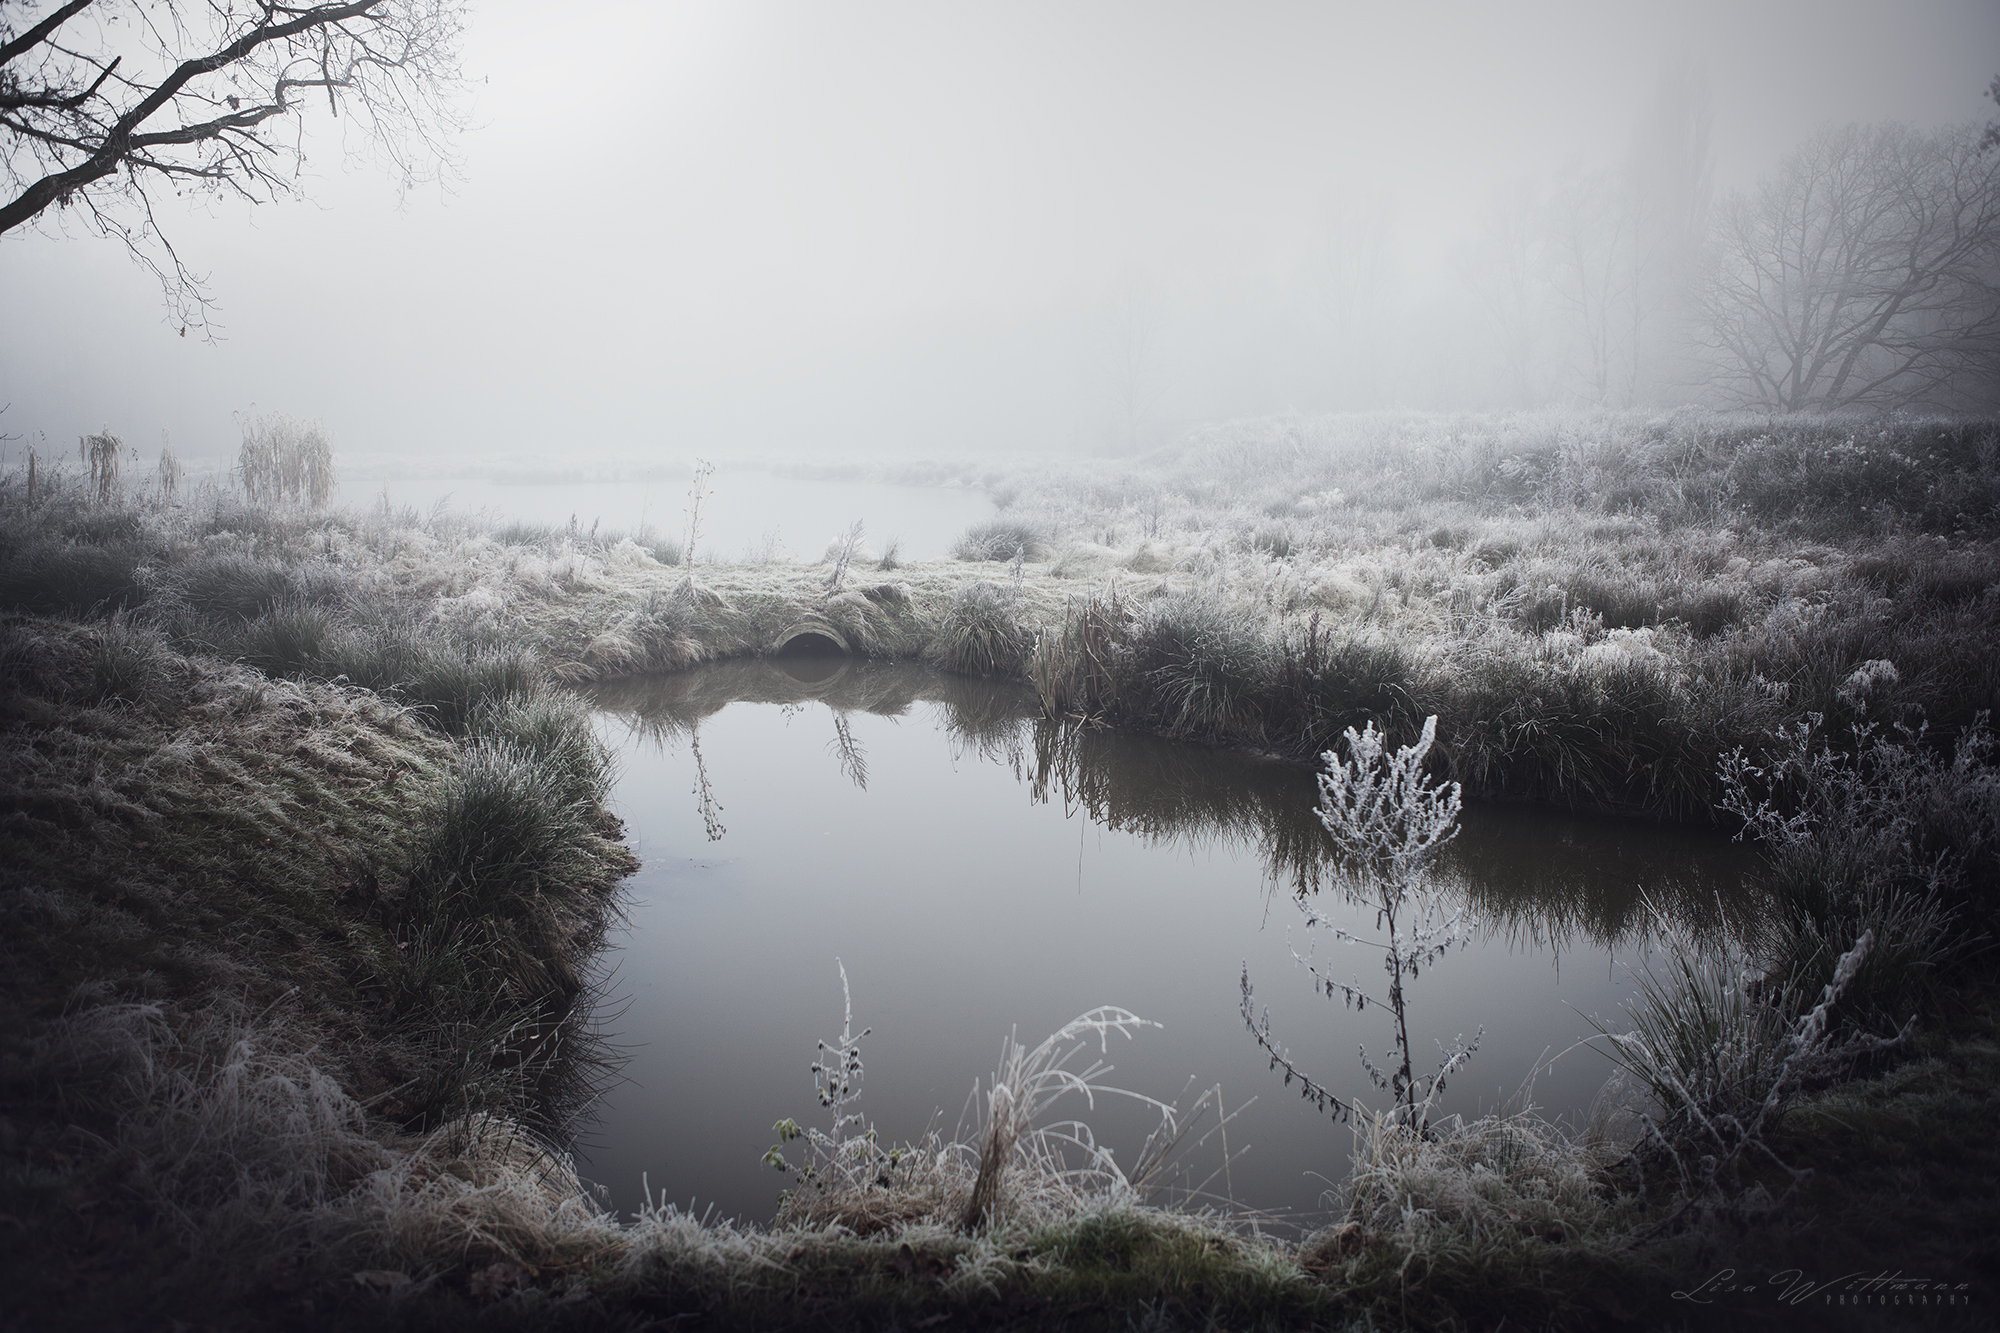 landscape_dust_fog_lake_tree_winter_christmas_atmosphere_cold_lisa_wittmann_photography_canon_dream_calm_freeze_nature